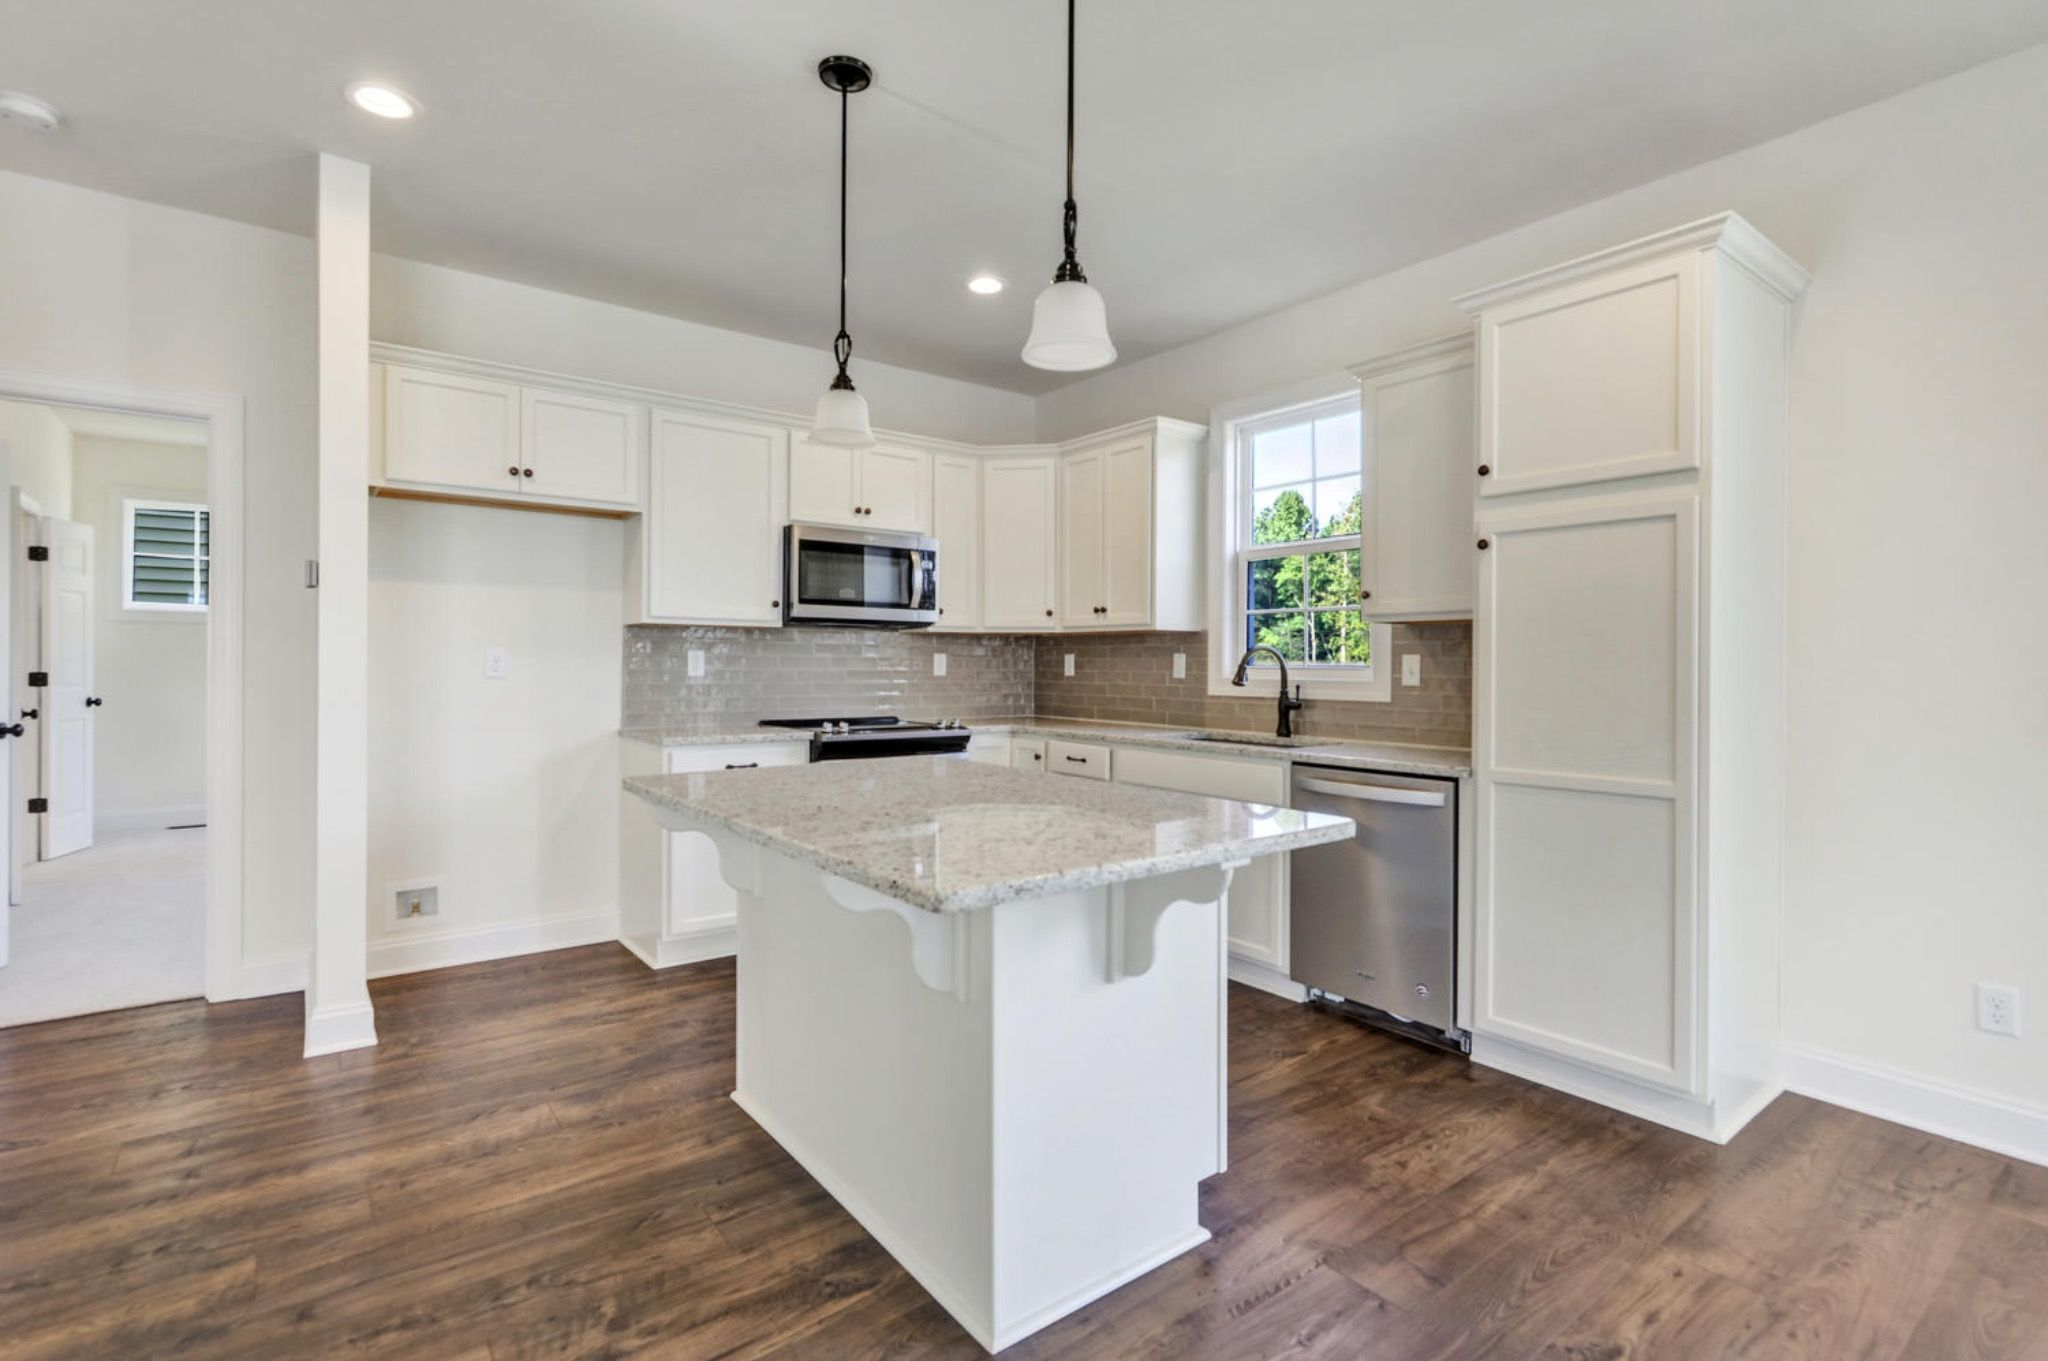 Kitchen featured in the Kelsey By Main Street Homes in Richmond-Petersburg, VA